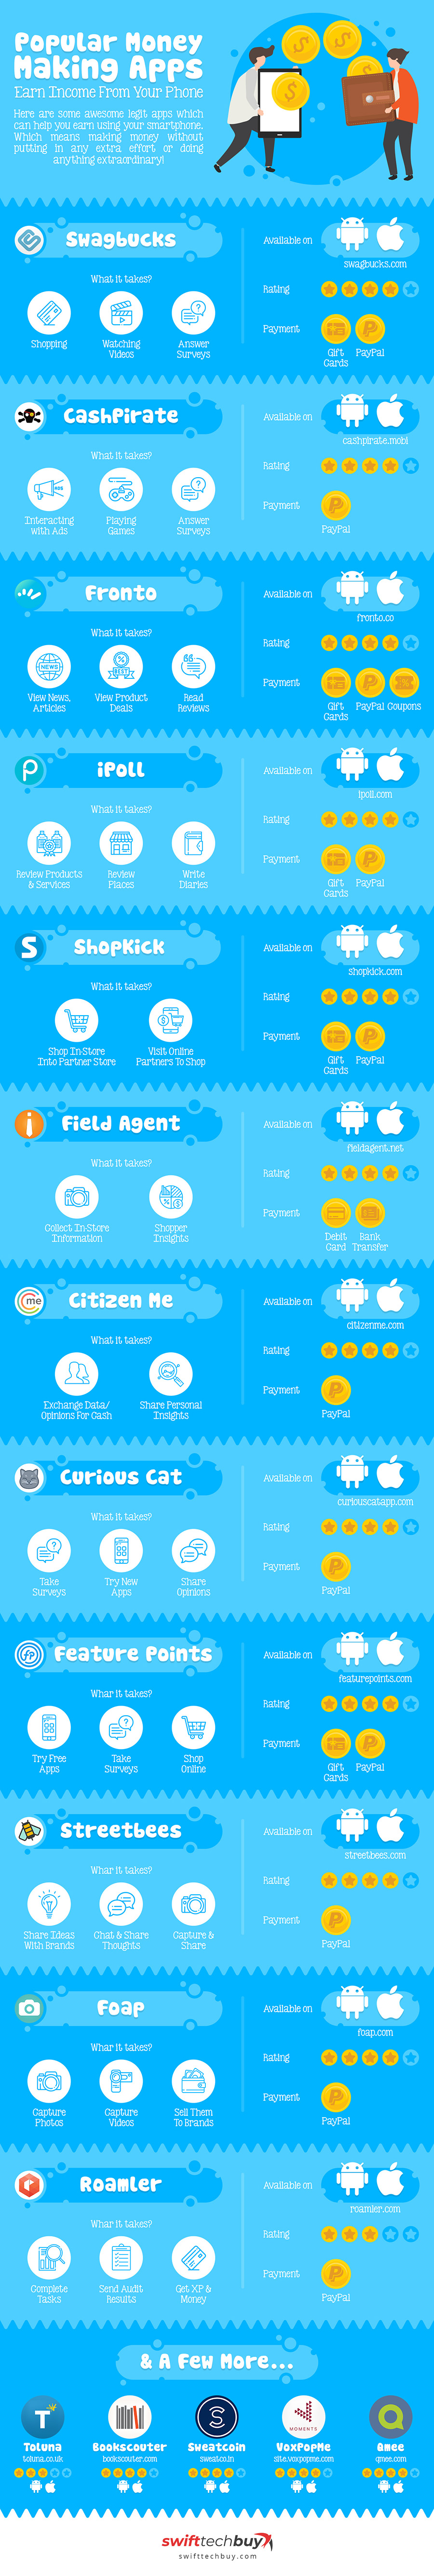 Infographic listing best money making apps